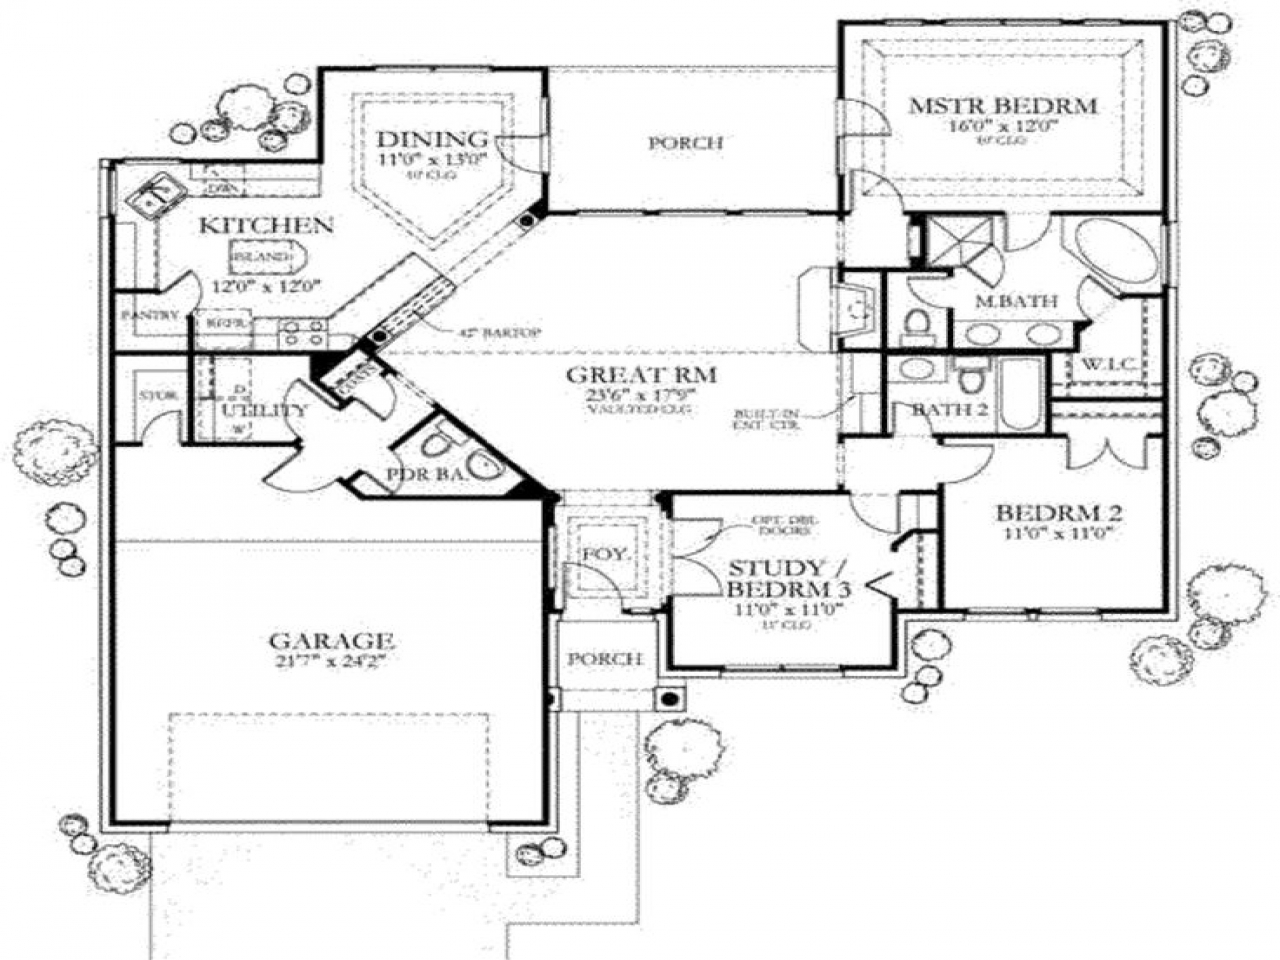 1500 sq ft house floor plans 1500 sq ft one story house for House plans with photos 1500 sq ft